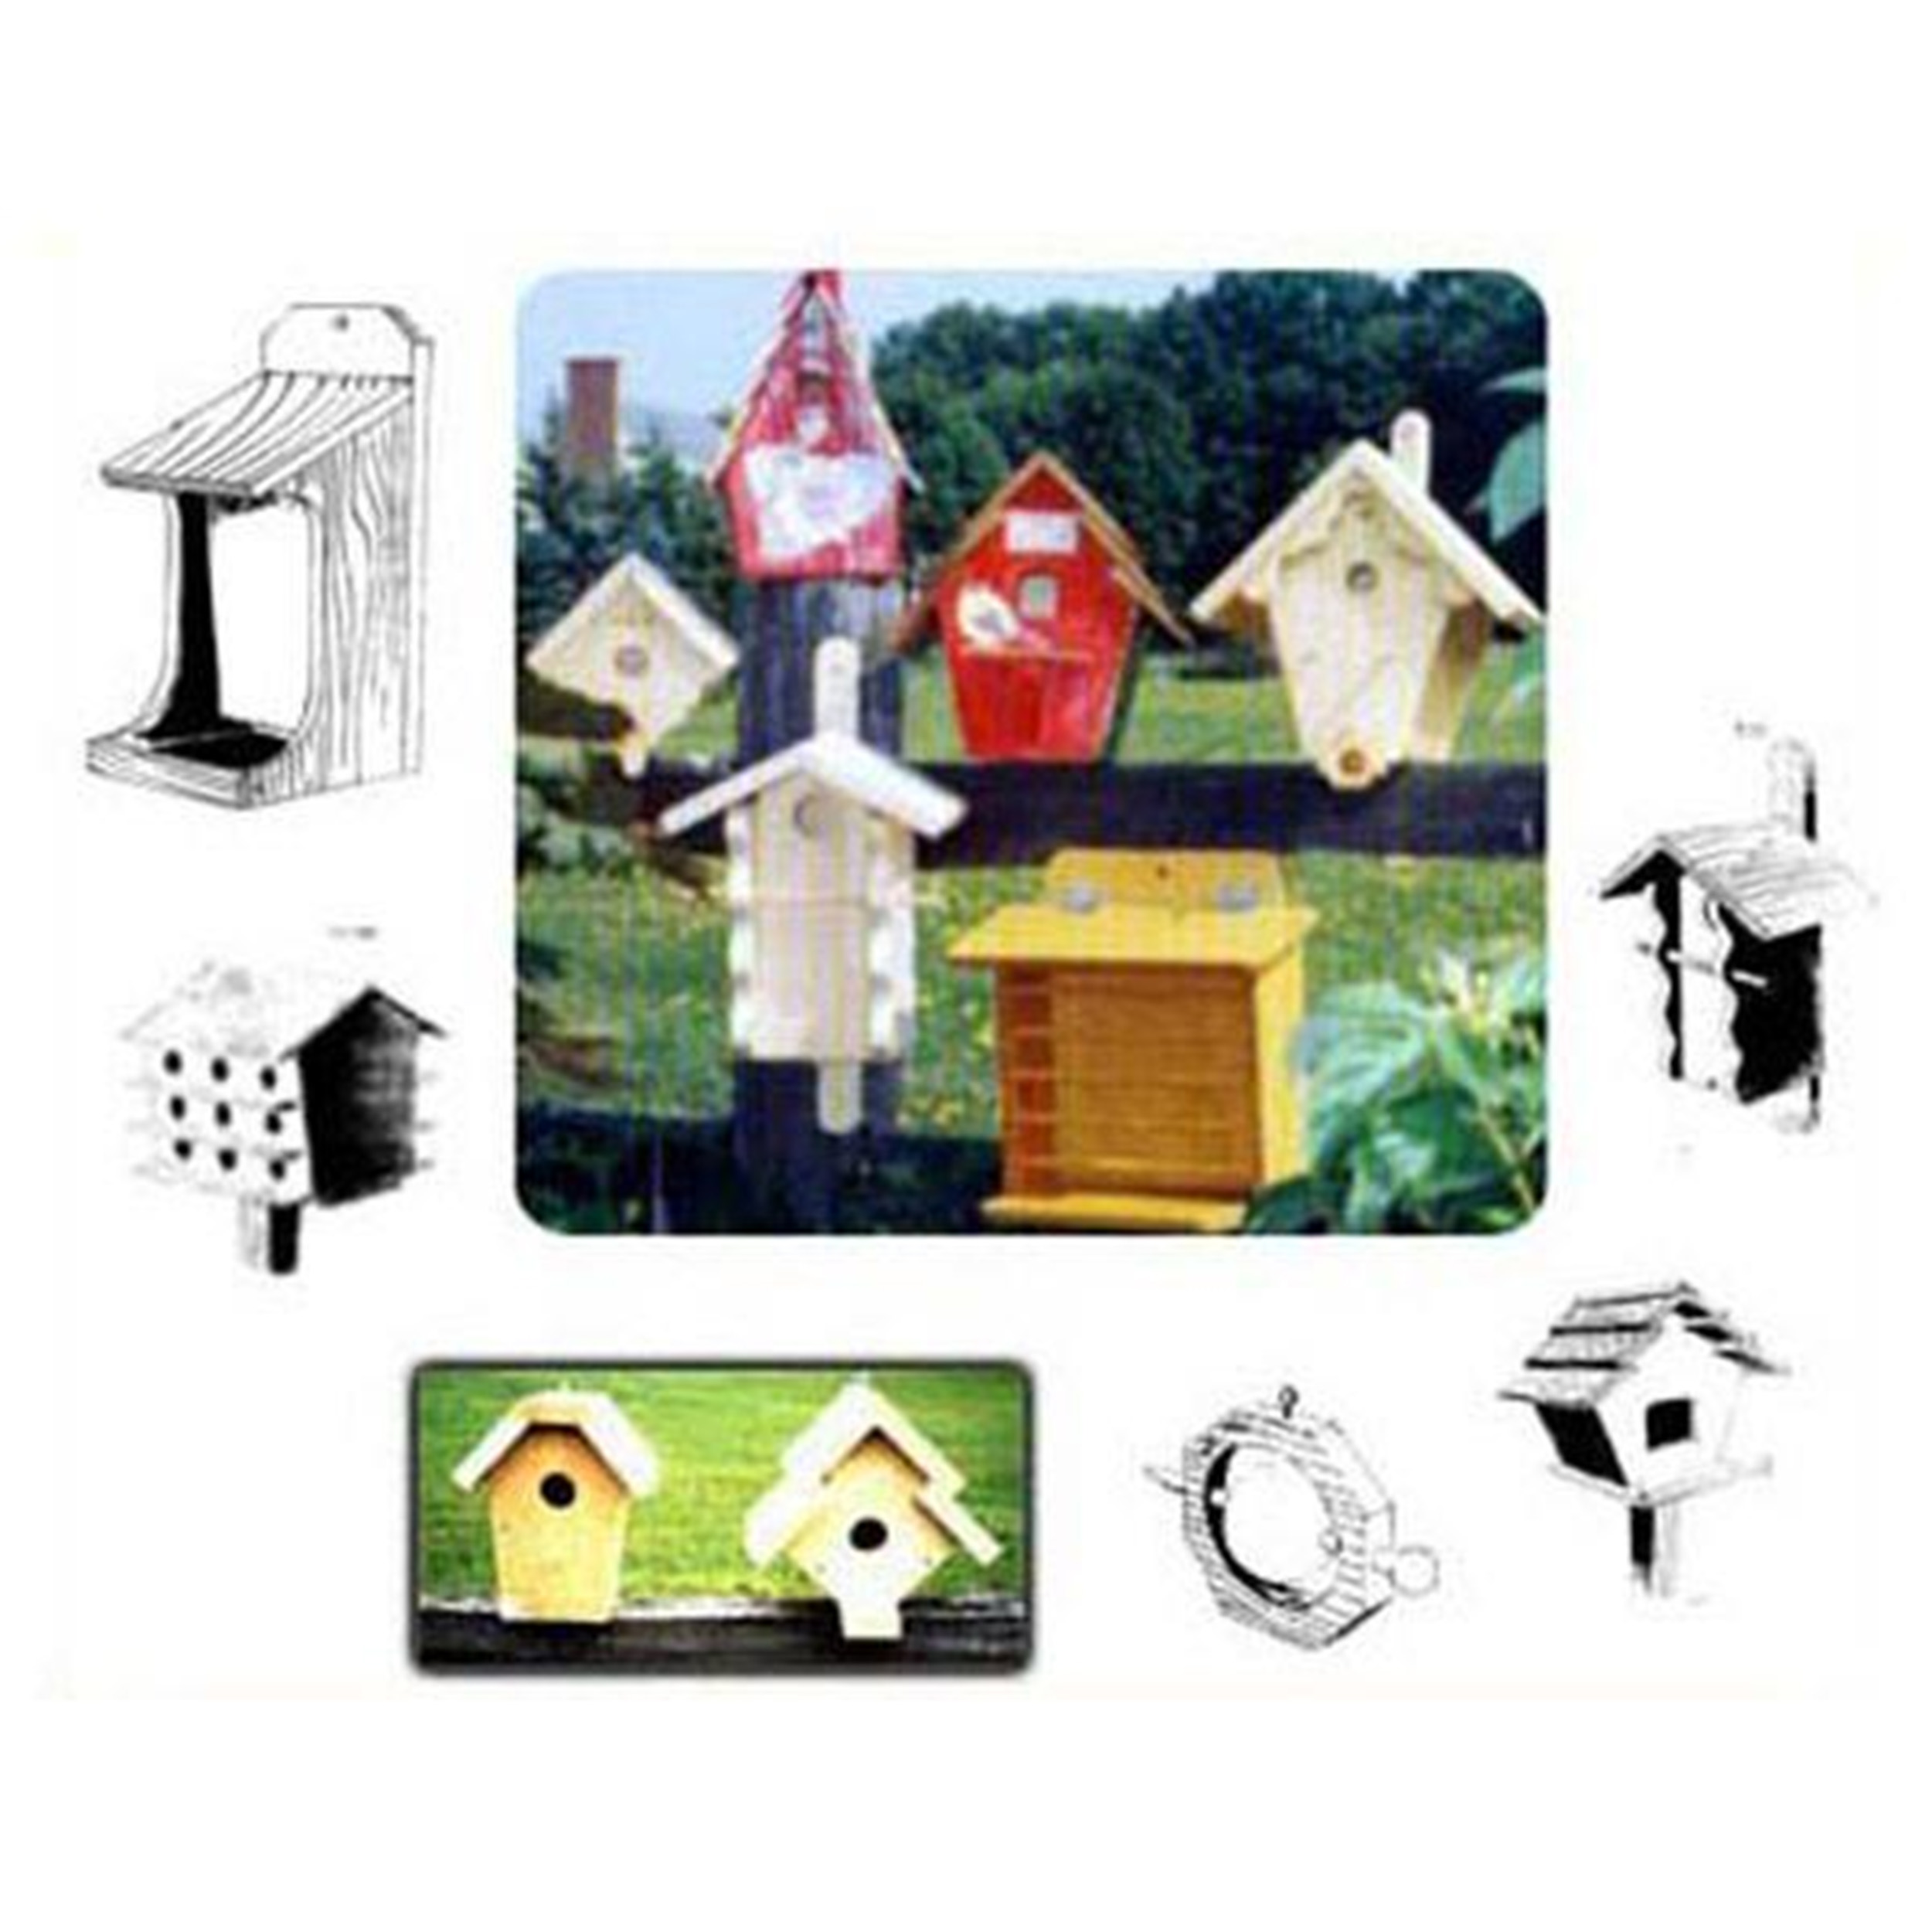 Woodworking Project Paper Plan to Build 27 Birdhouses and Feeders by